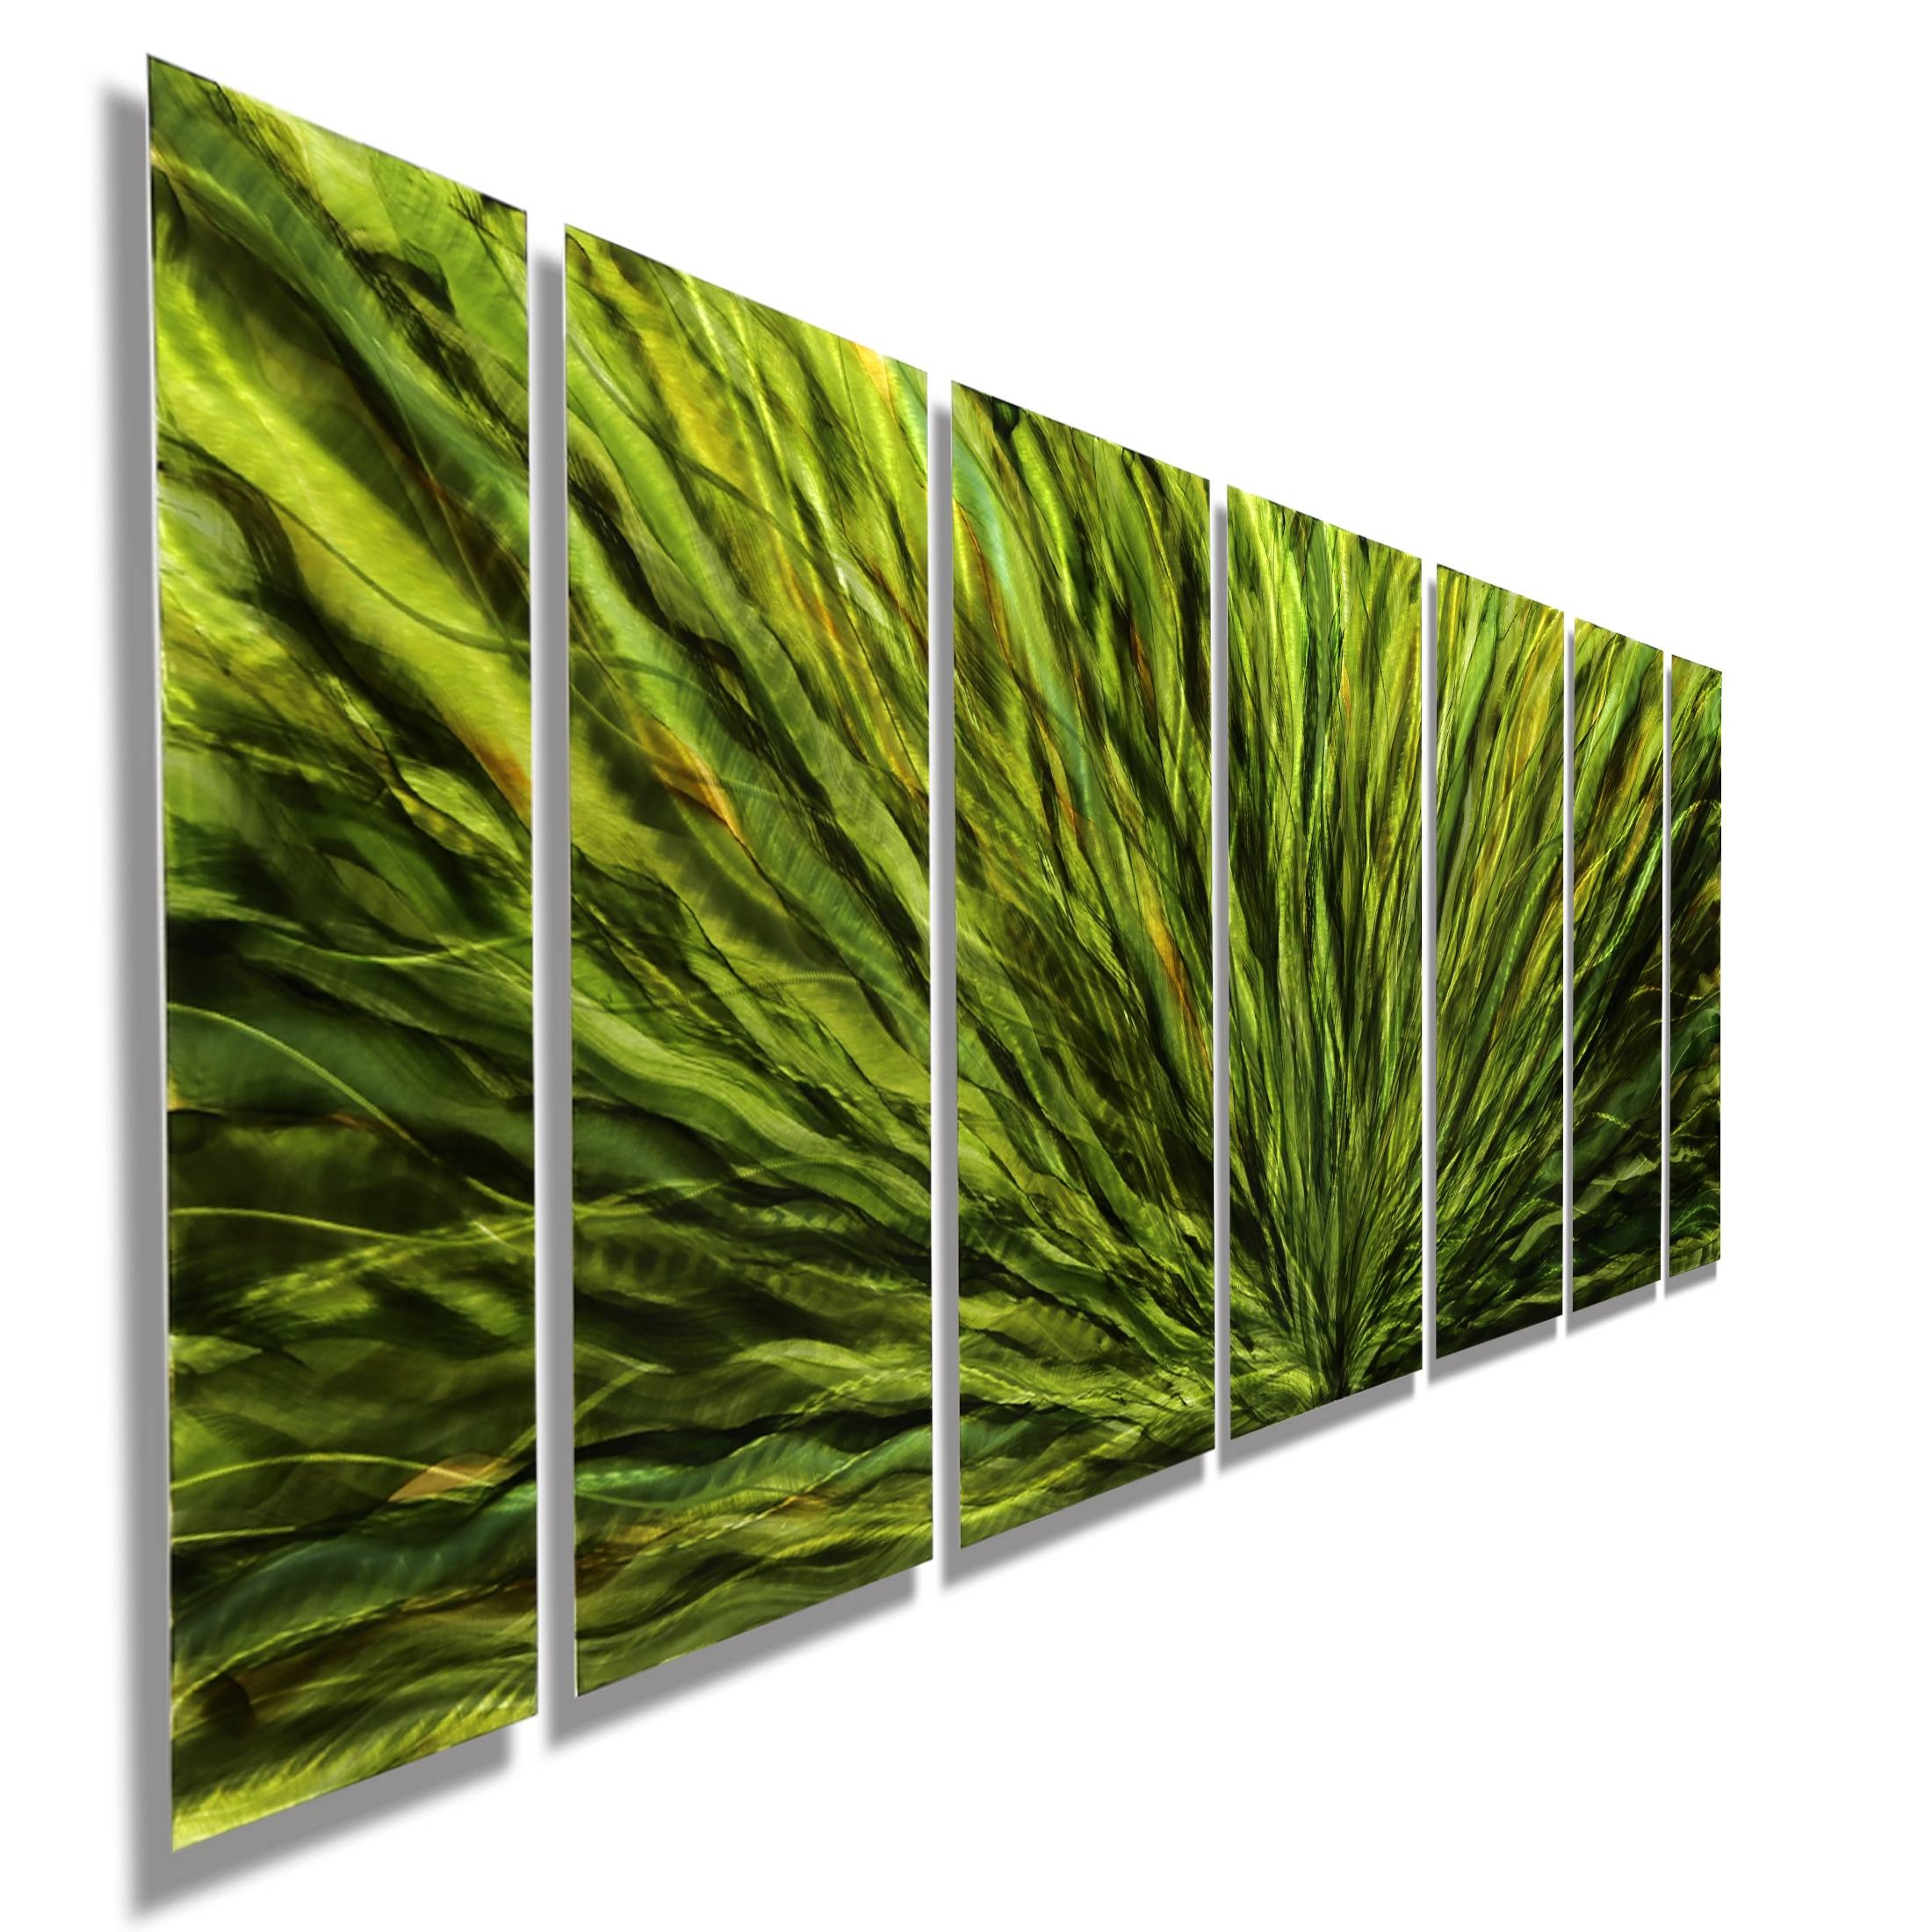 Emerald Plumage – Vivid Green Hand Painted, 7 Piece Metal Wall Art Inside Recent Green Metal Wall Art (View 7 of 20)